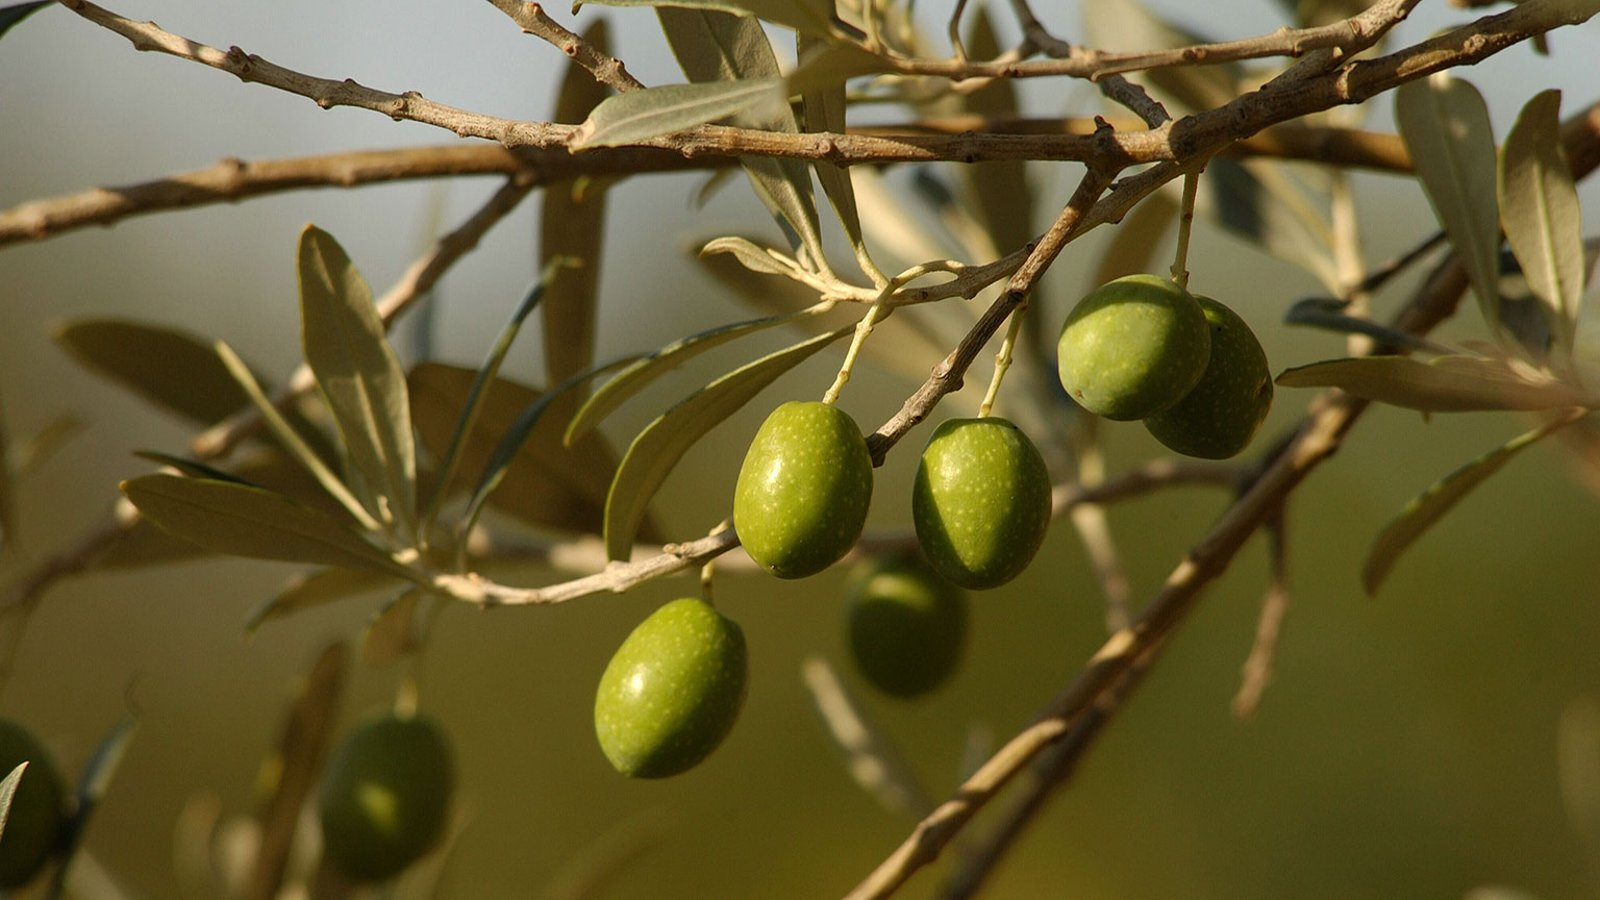 Classical Greece—Wine, Olive Oil, and Trade